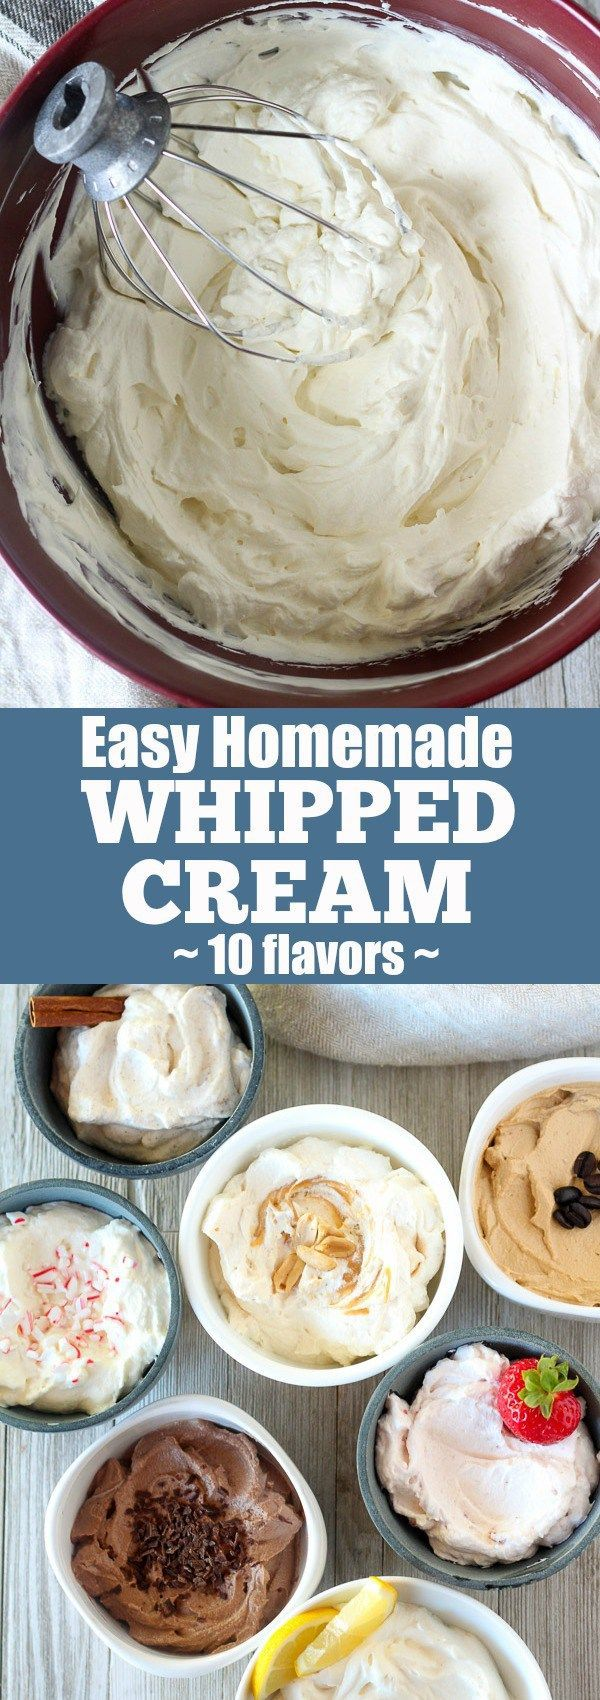 Easy Homemade Whipped Cream (10 flavors)